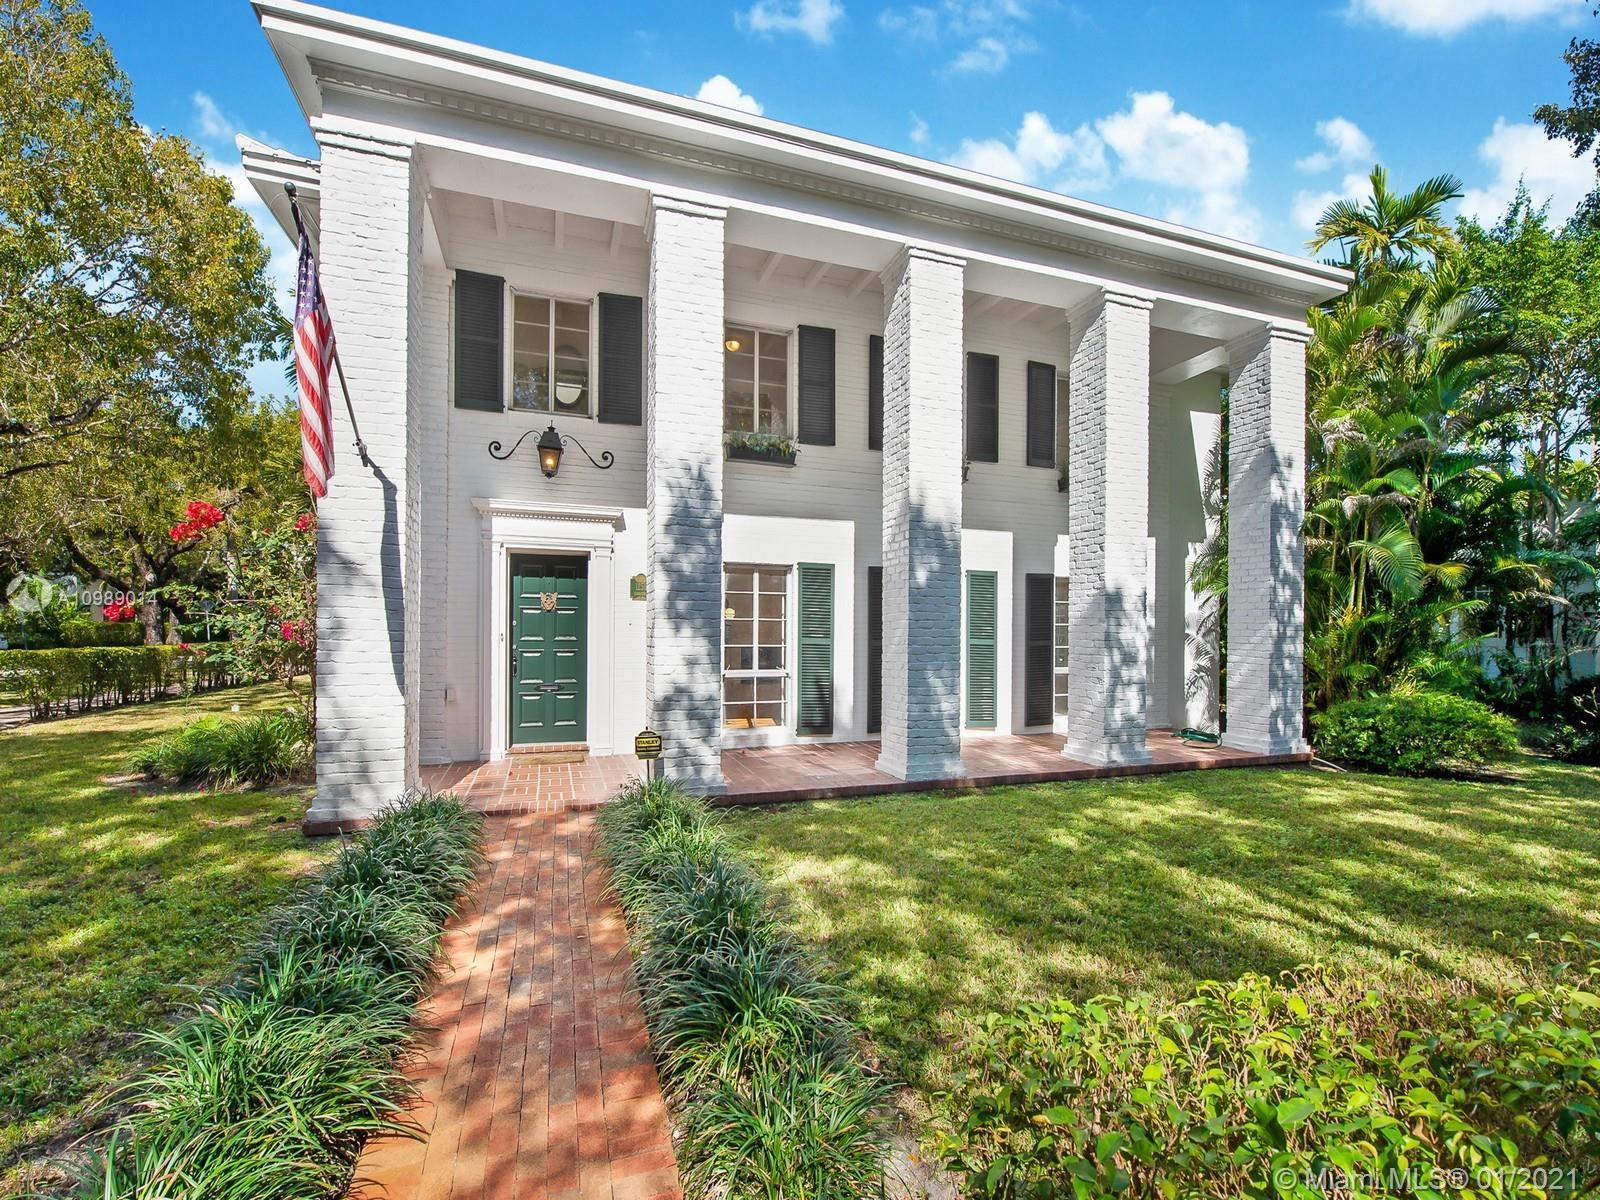 Elegant and iconic, this home epitomizes colonial Coral Gables architecture on one of its most famou